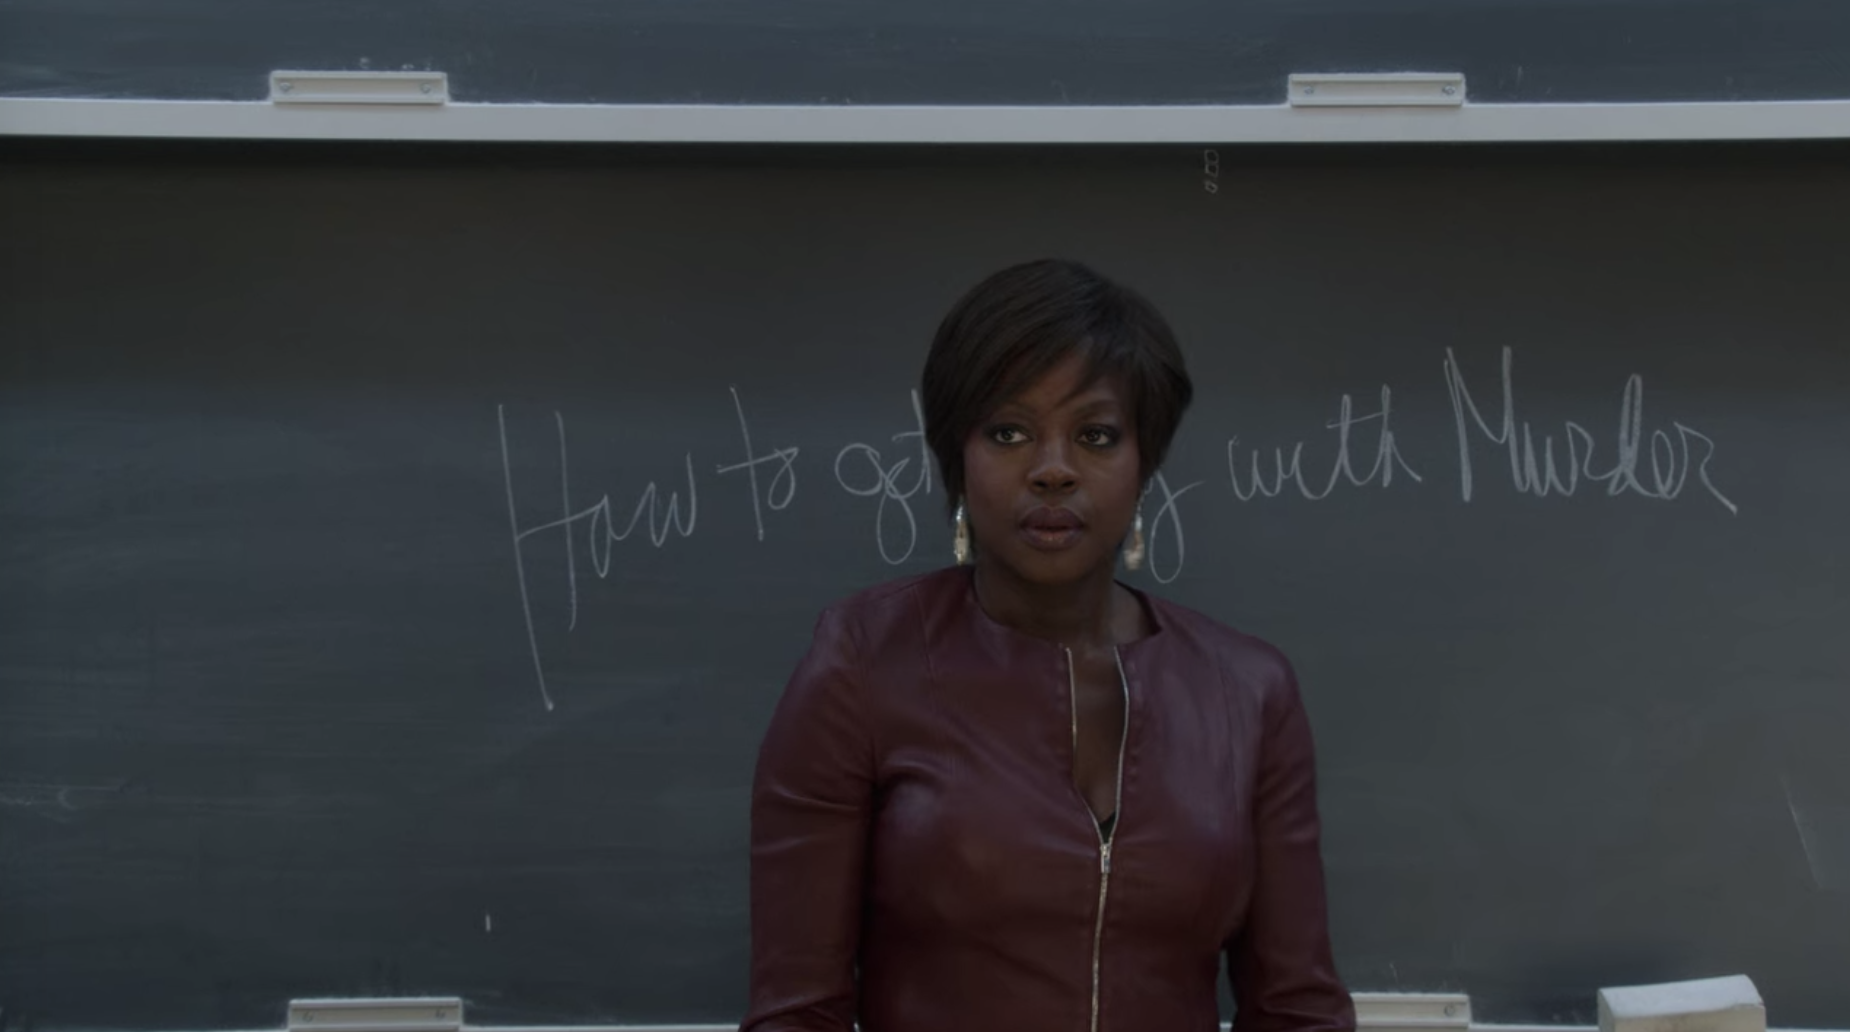 Annalise Keating introducing herself to the class.